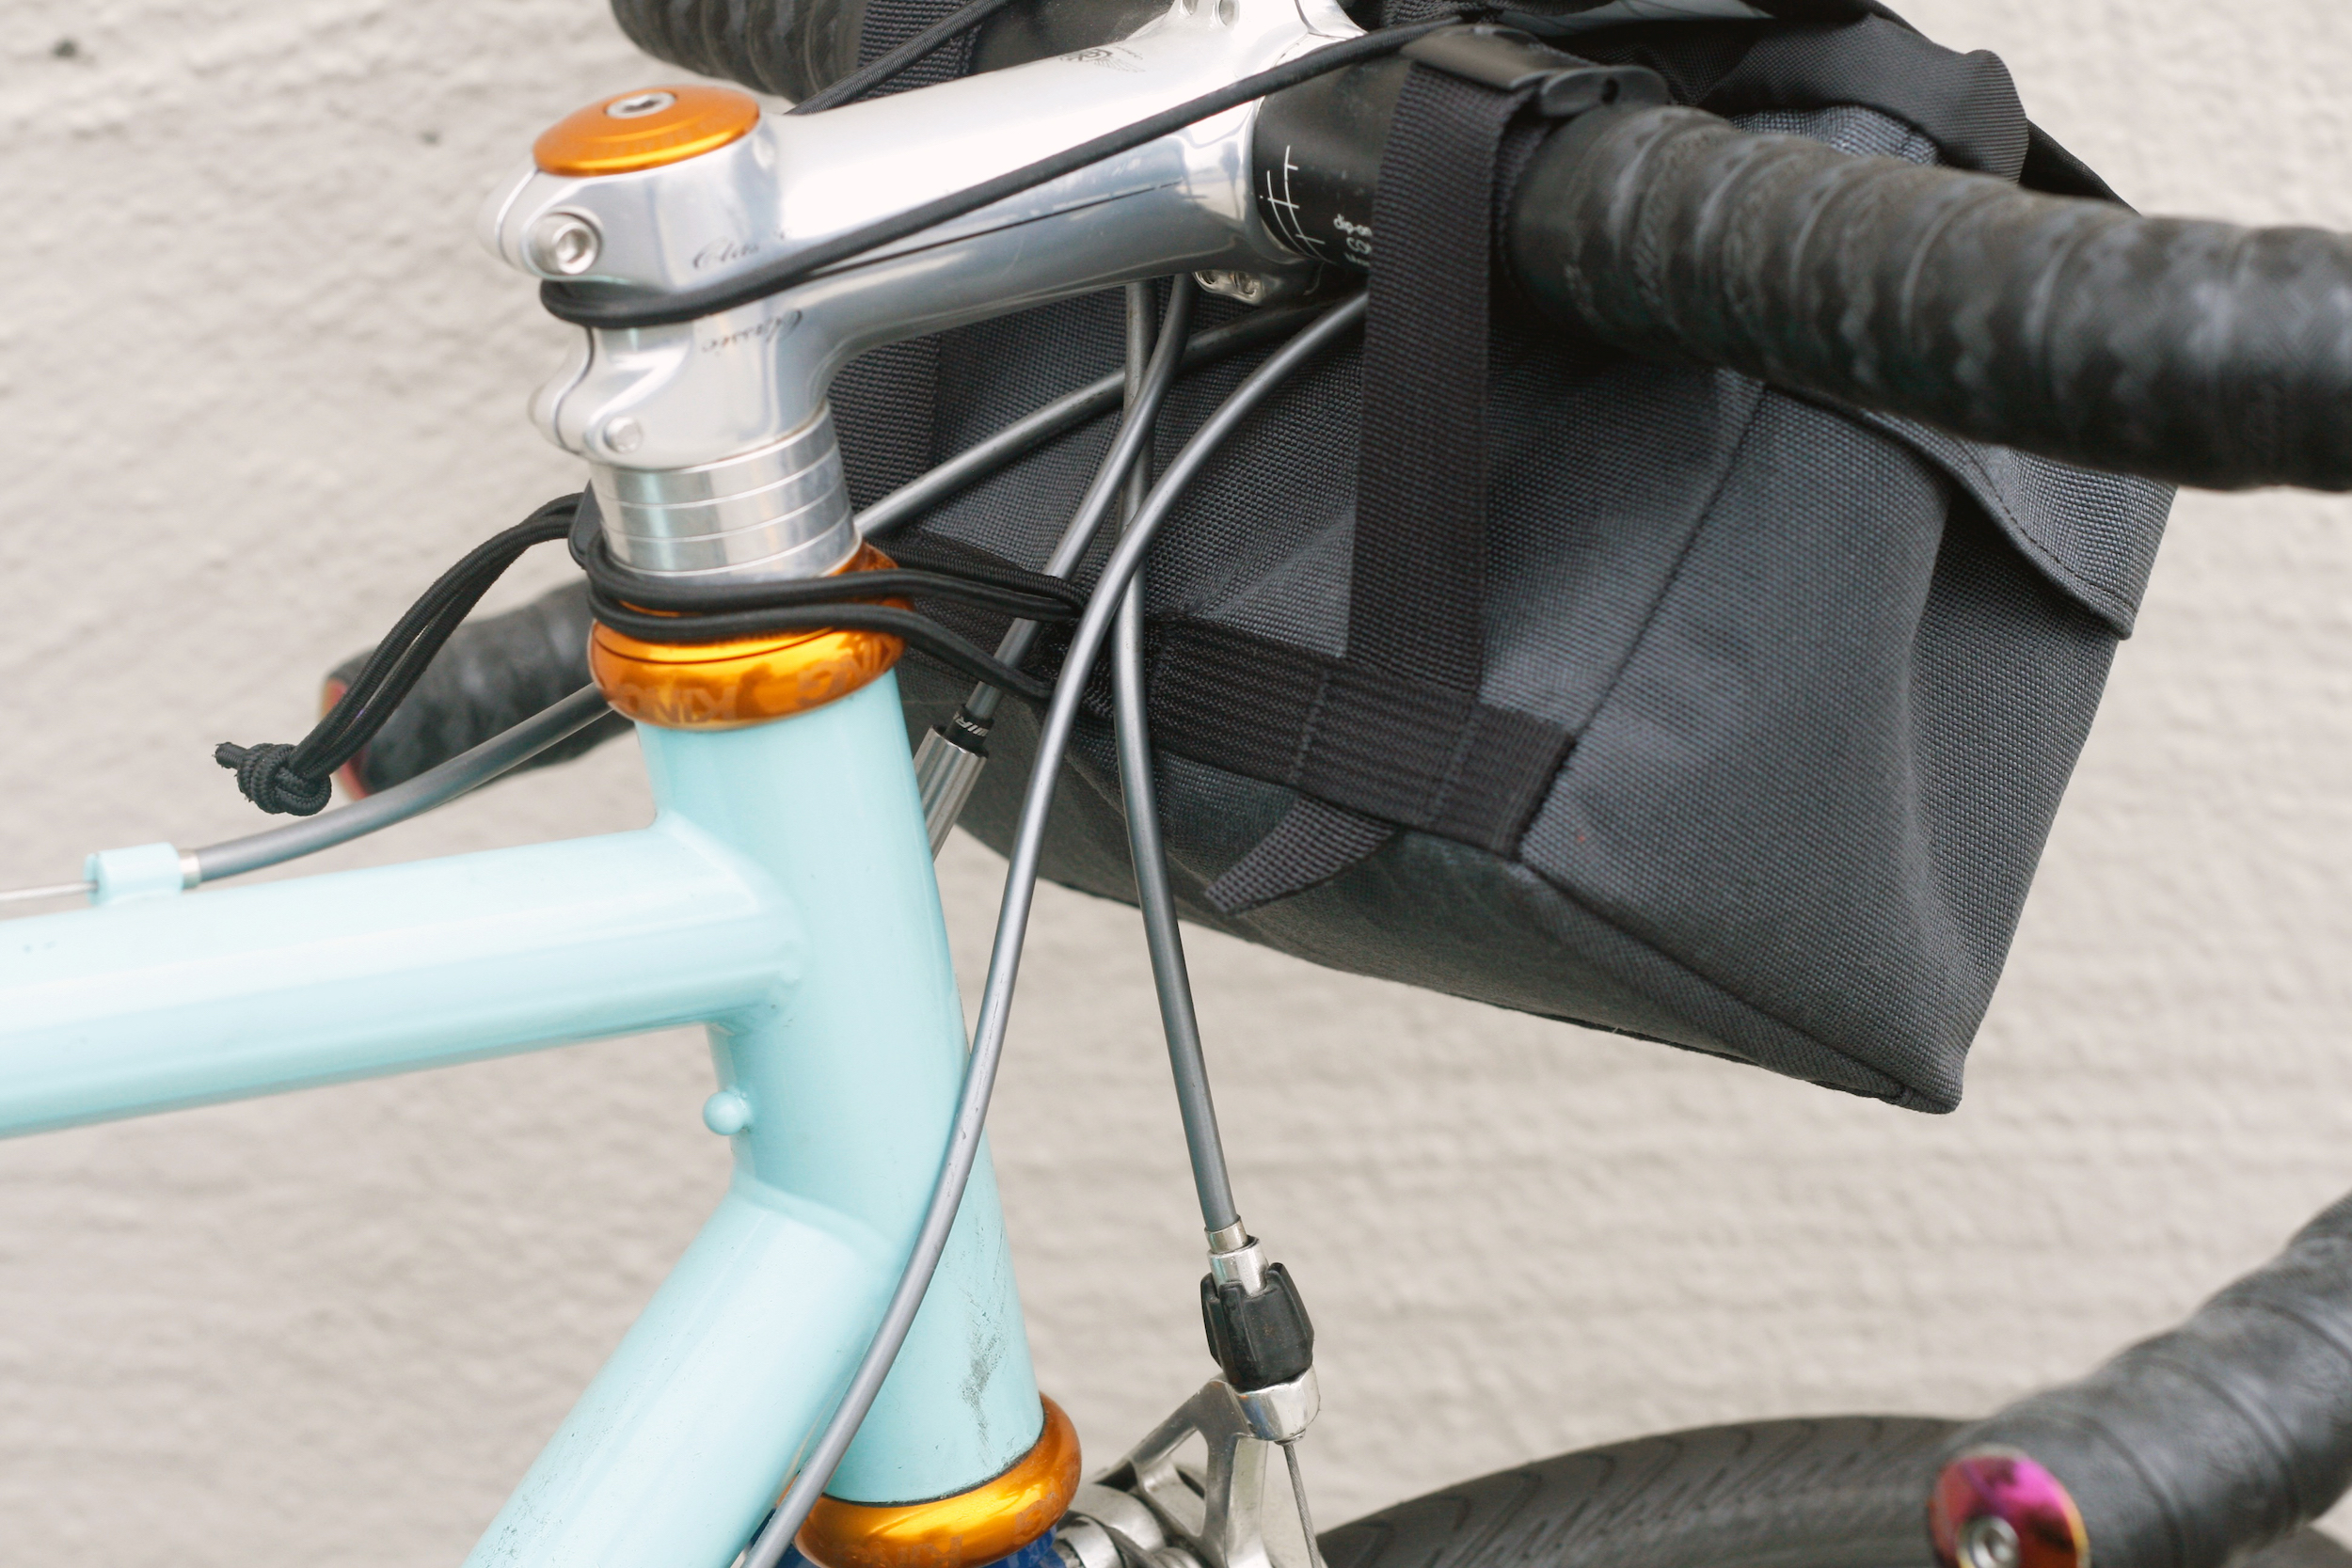 No spacers needed, bag rests gently against the cables